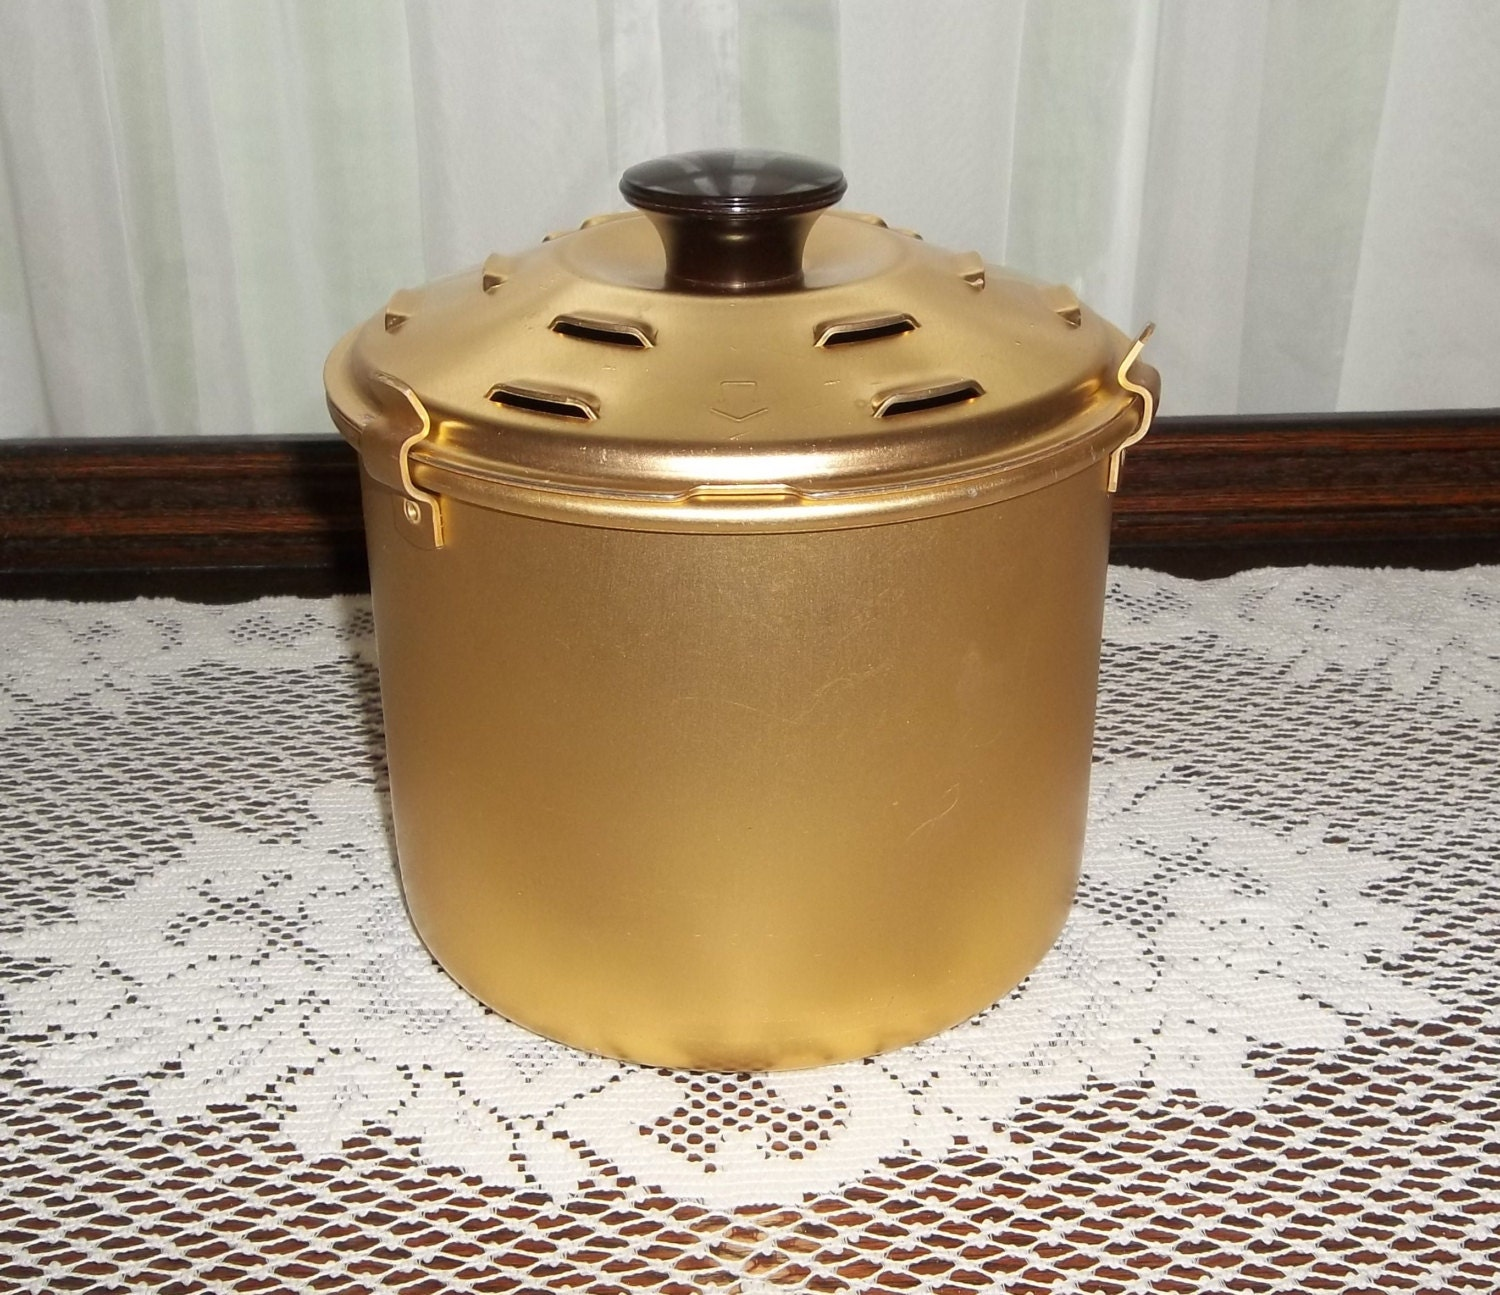 Vintage Rival Crock Pot Bread And Cake Bake Insert Pan Gold